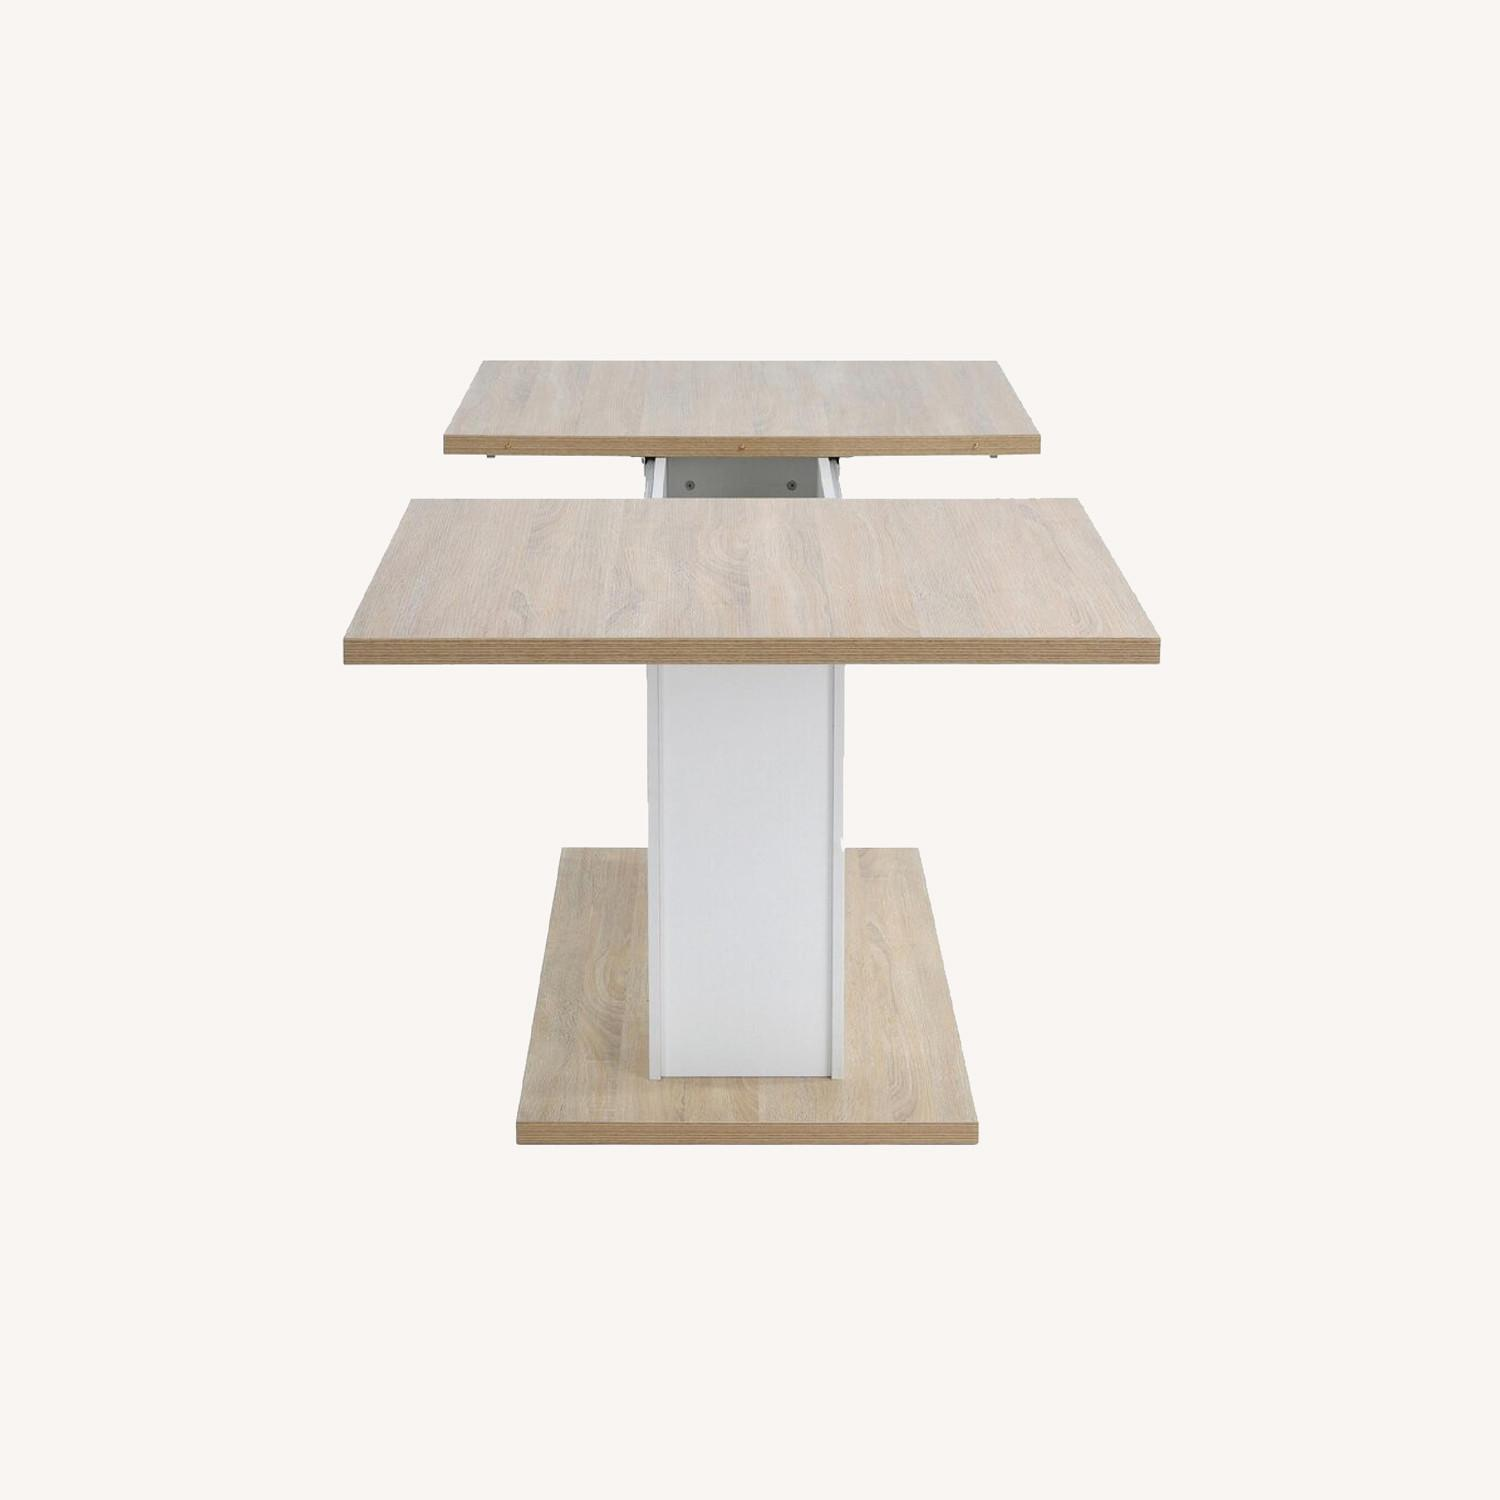 Wayfair Extendable Dining Table (seats up to 8) - image-0